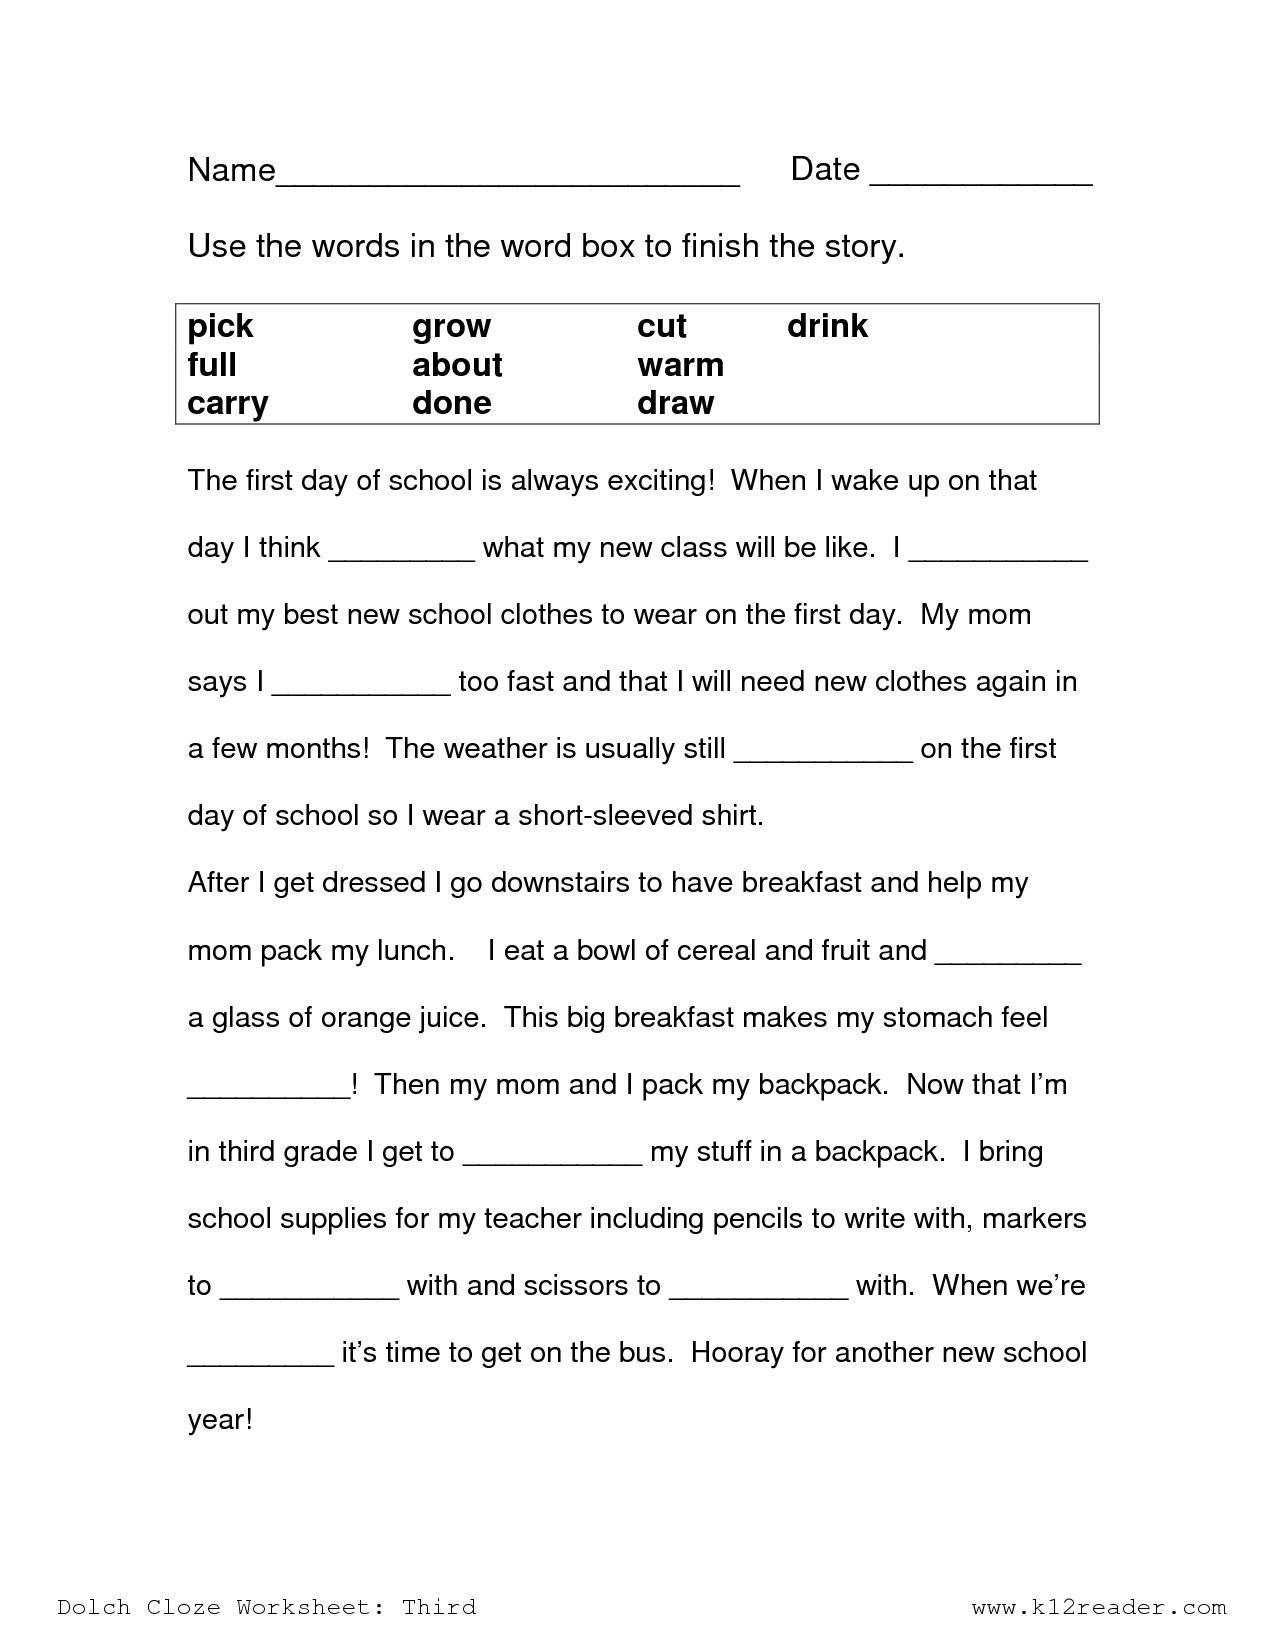 worksheet Context Clues Worksheets 2nd Grade 78 images about esl exercise on pinterest verb tenses student centered resources and esl